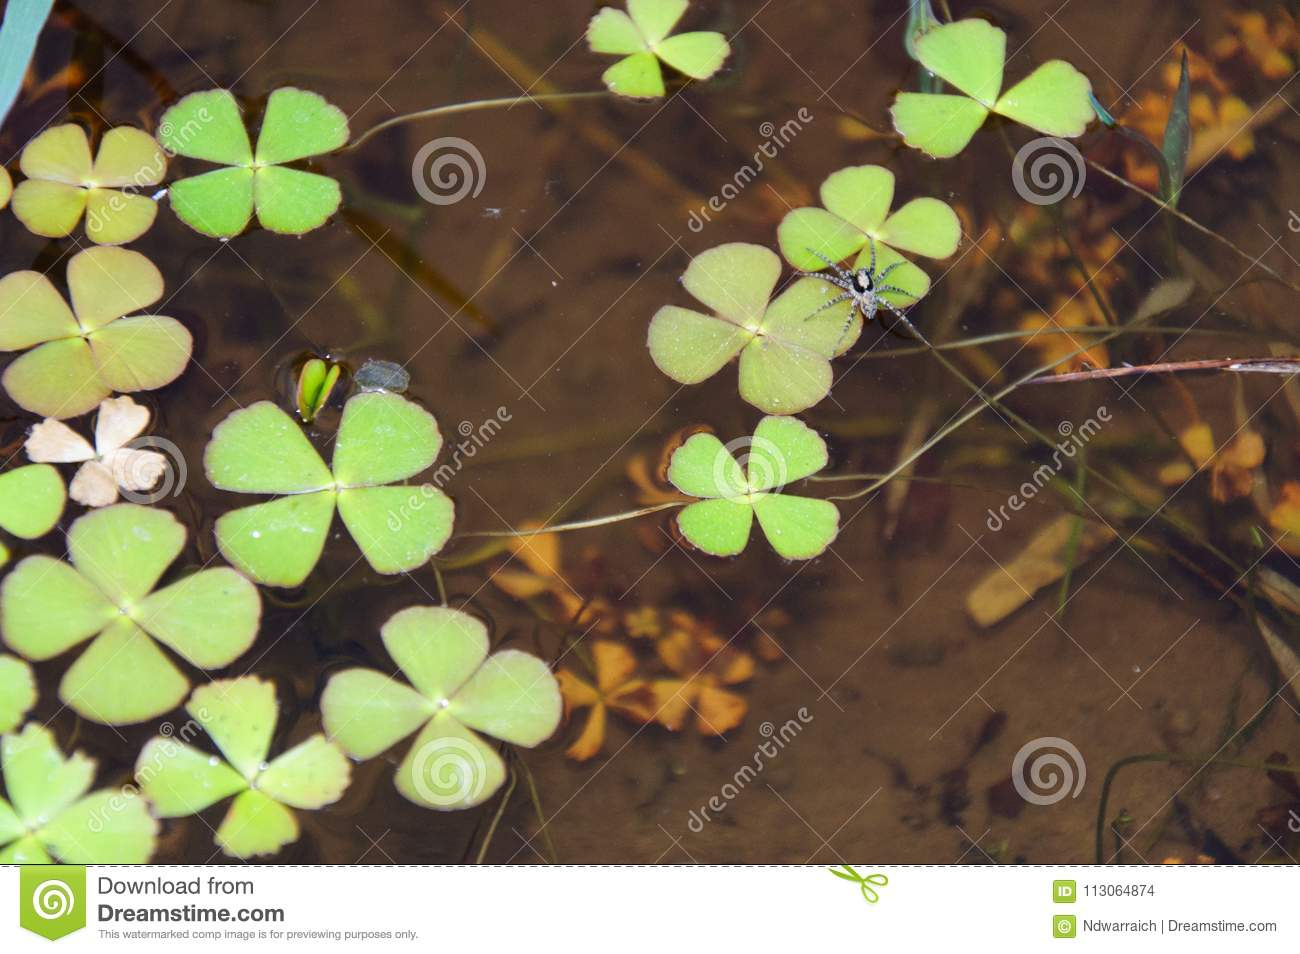 The Clover Plant In The Water Stock Photo - Image of outdoors ...